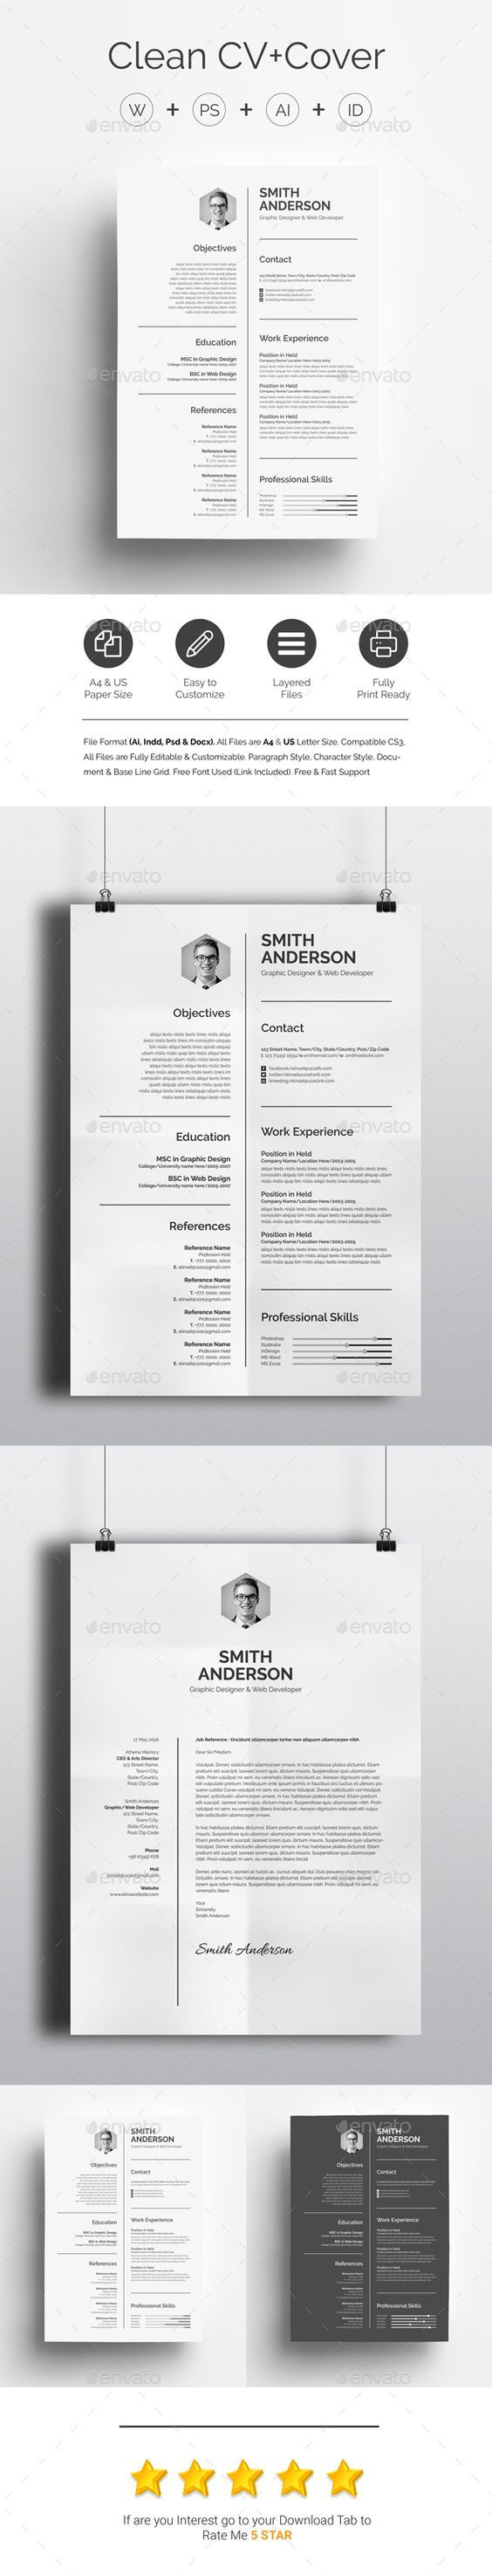 best ideas about resume creator creative cv professional modern resume template for ms word cv template for word resume template for word editable instant digital